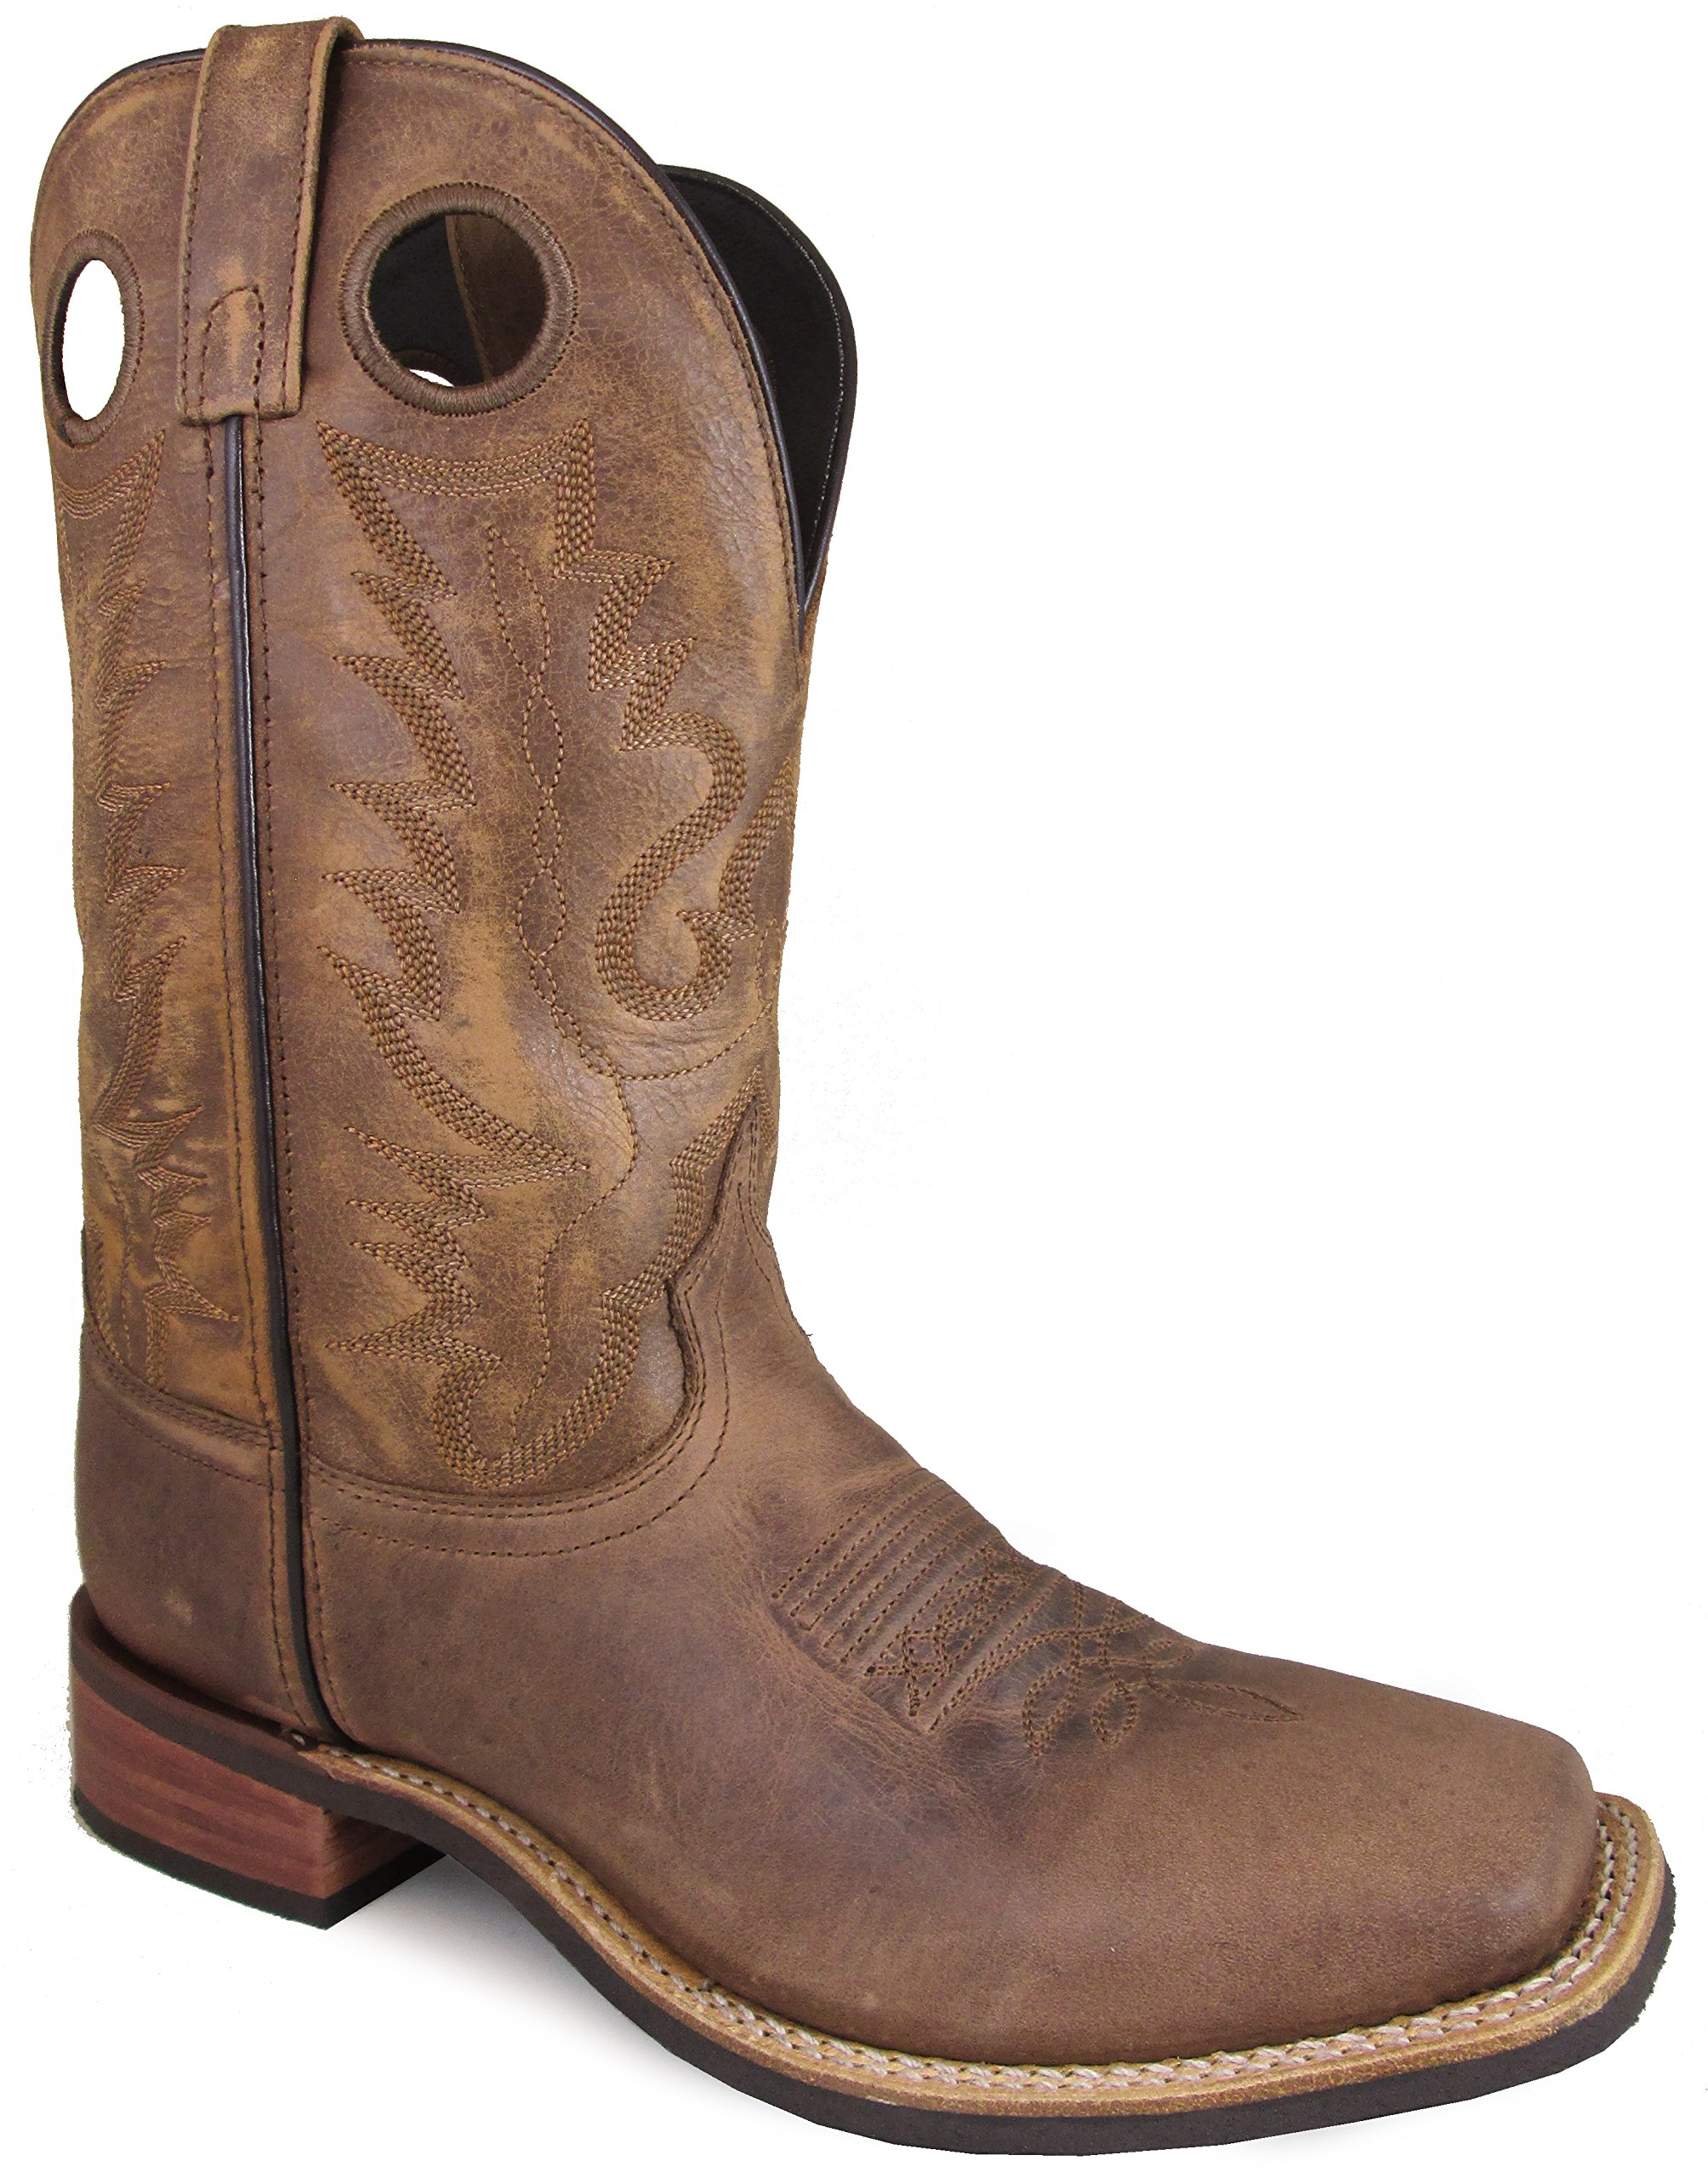 Smoky Mountain Men's Timber Pull On Closure Stitched Design Square Toe Brown Distress Boots 10.5D by Smoky Mountain Boots